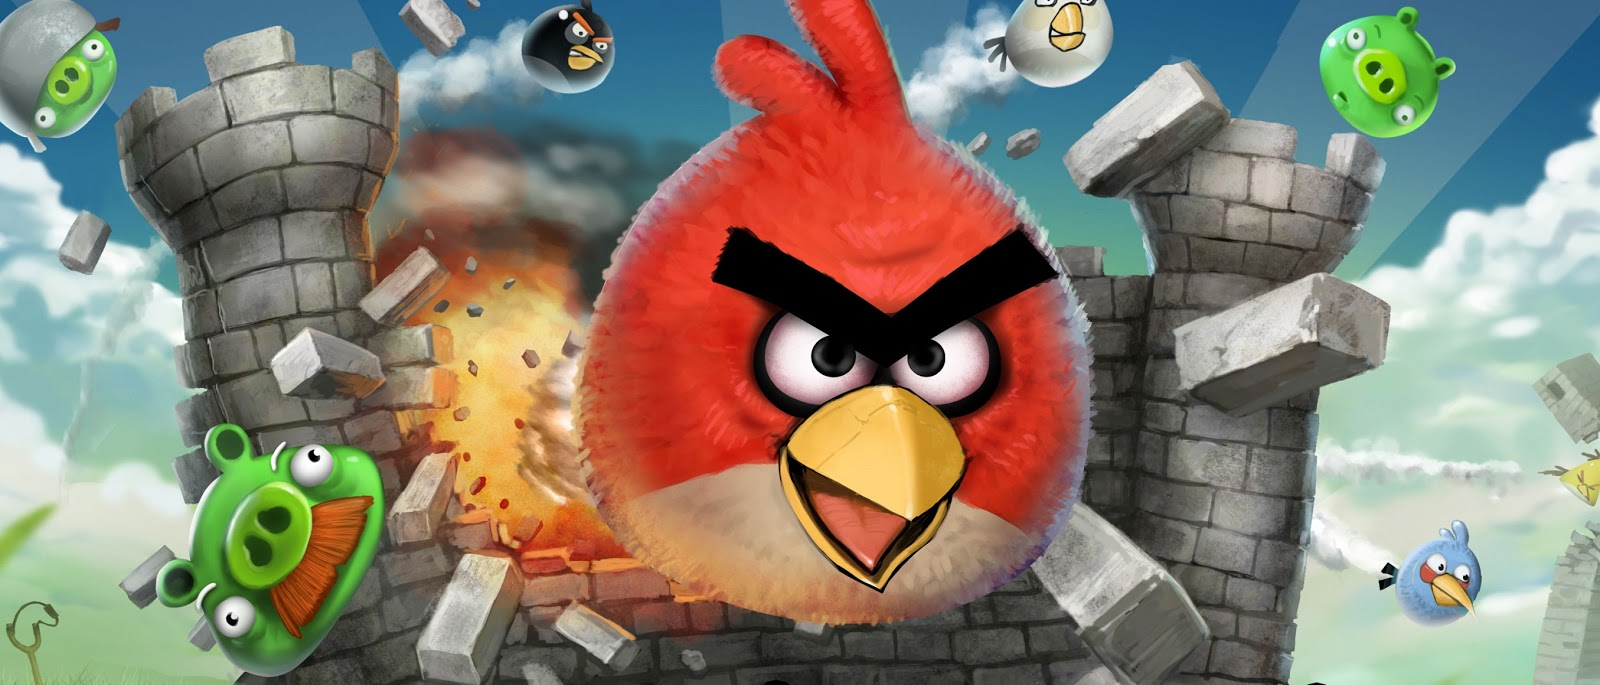 Angry birds Wallpapers HD   High Defination Wallpapers